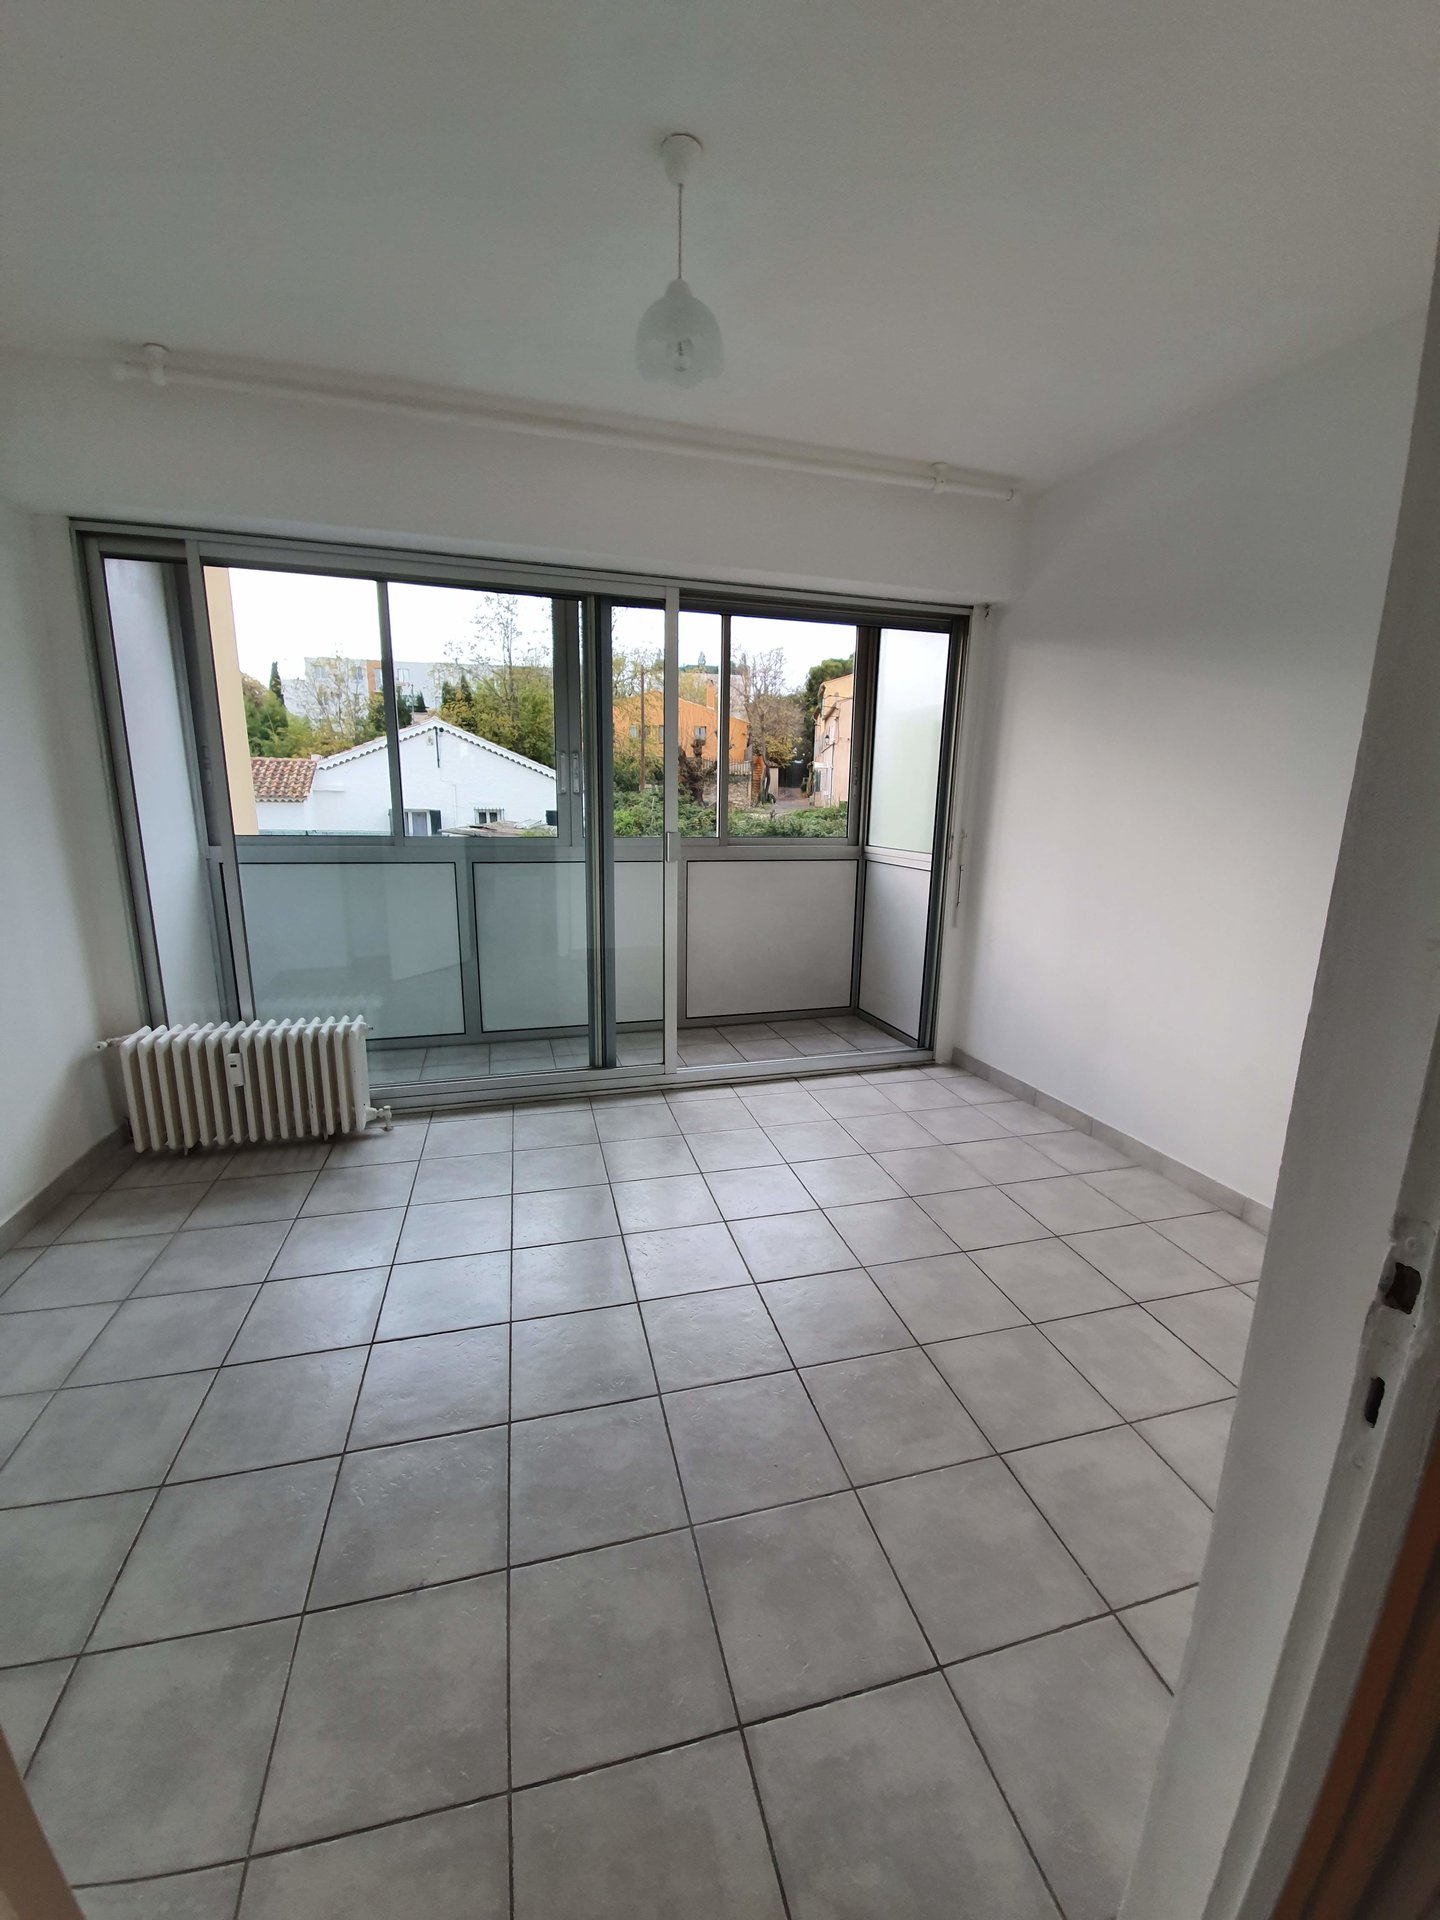 Appartement de type 2 de 45m²